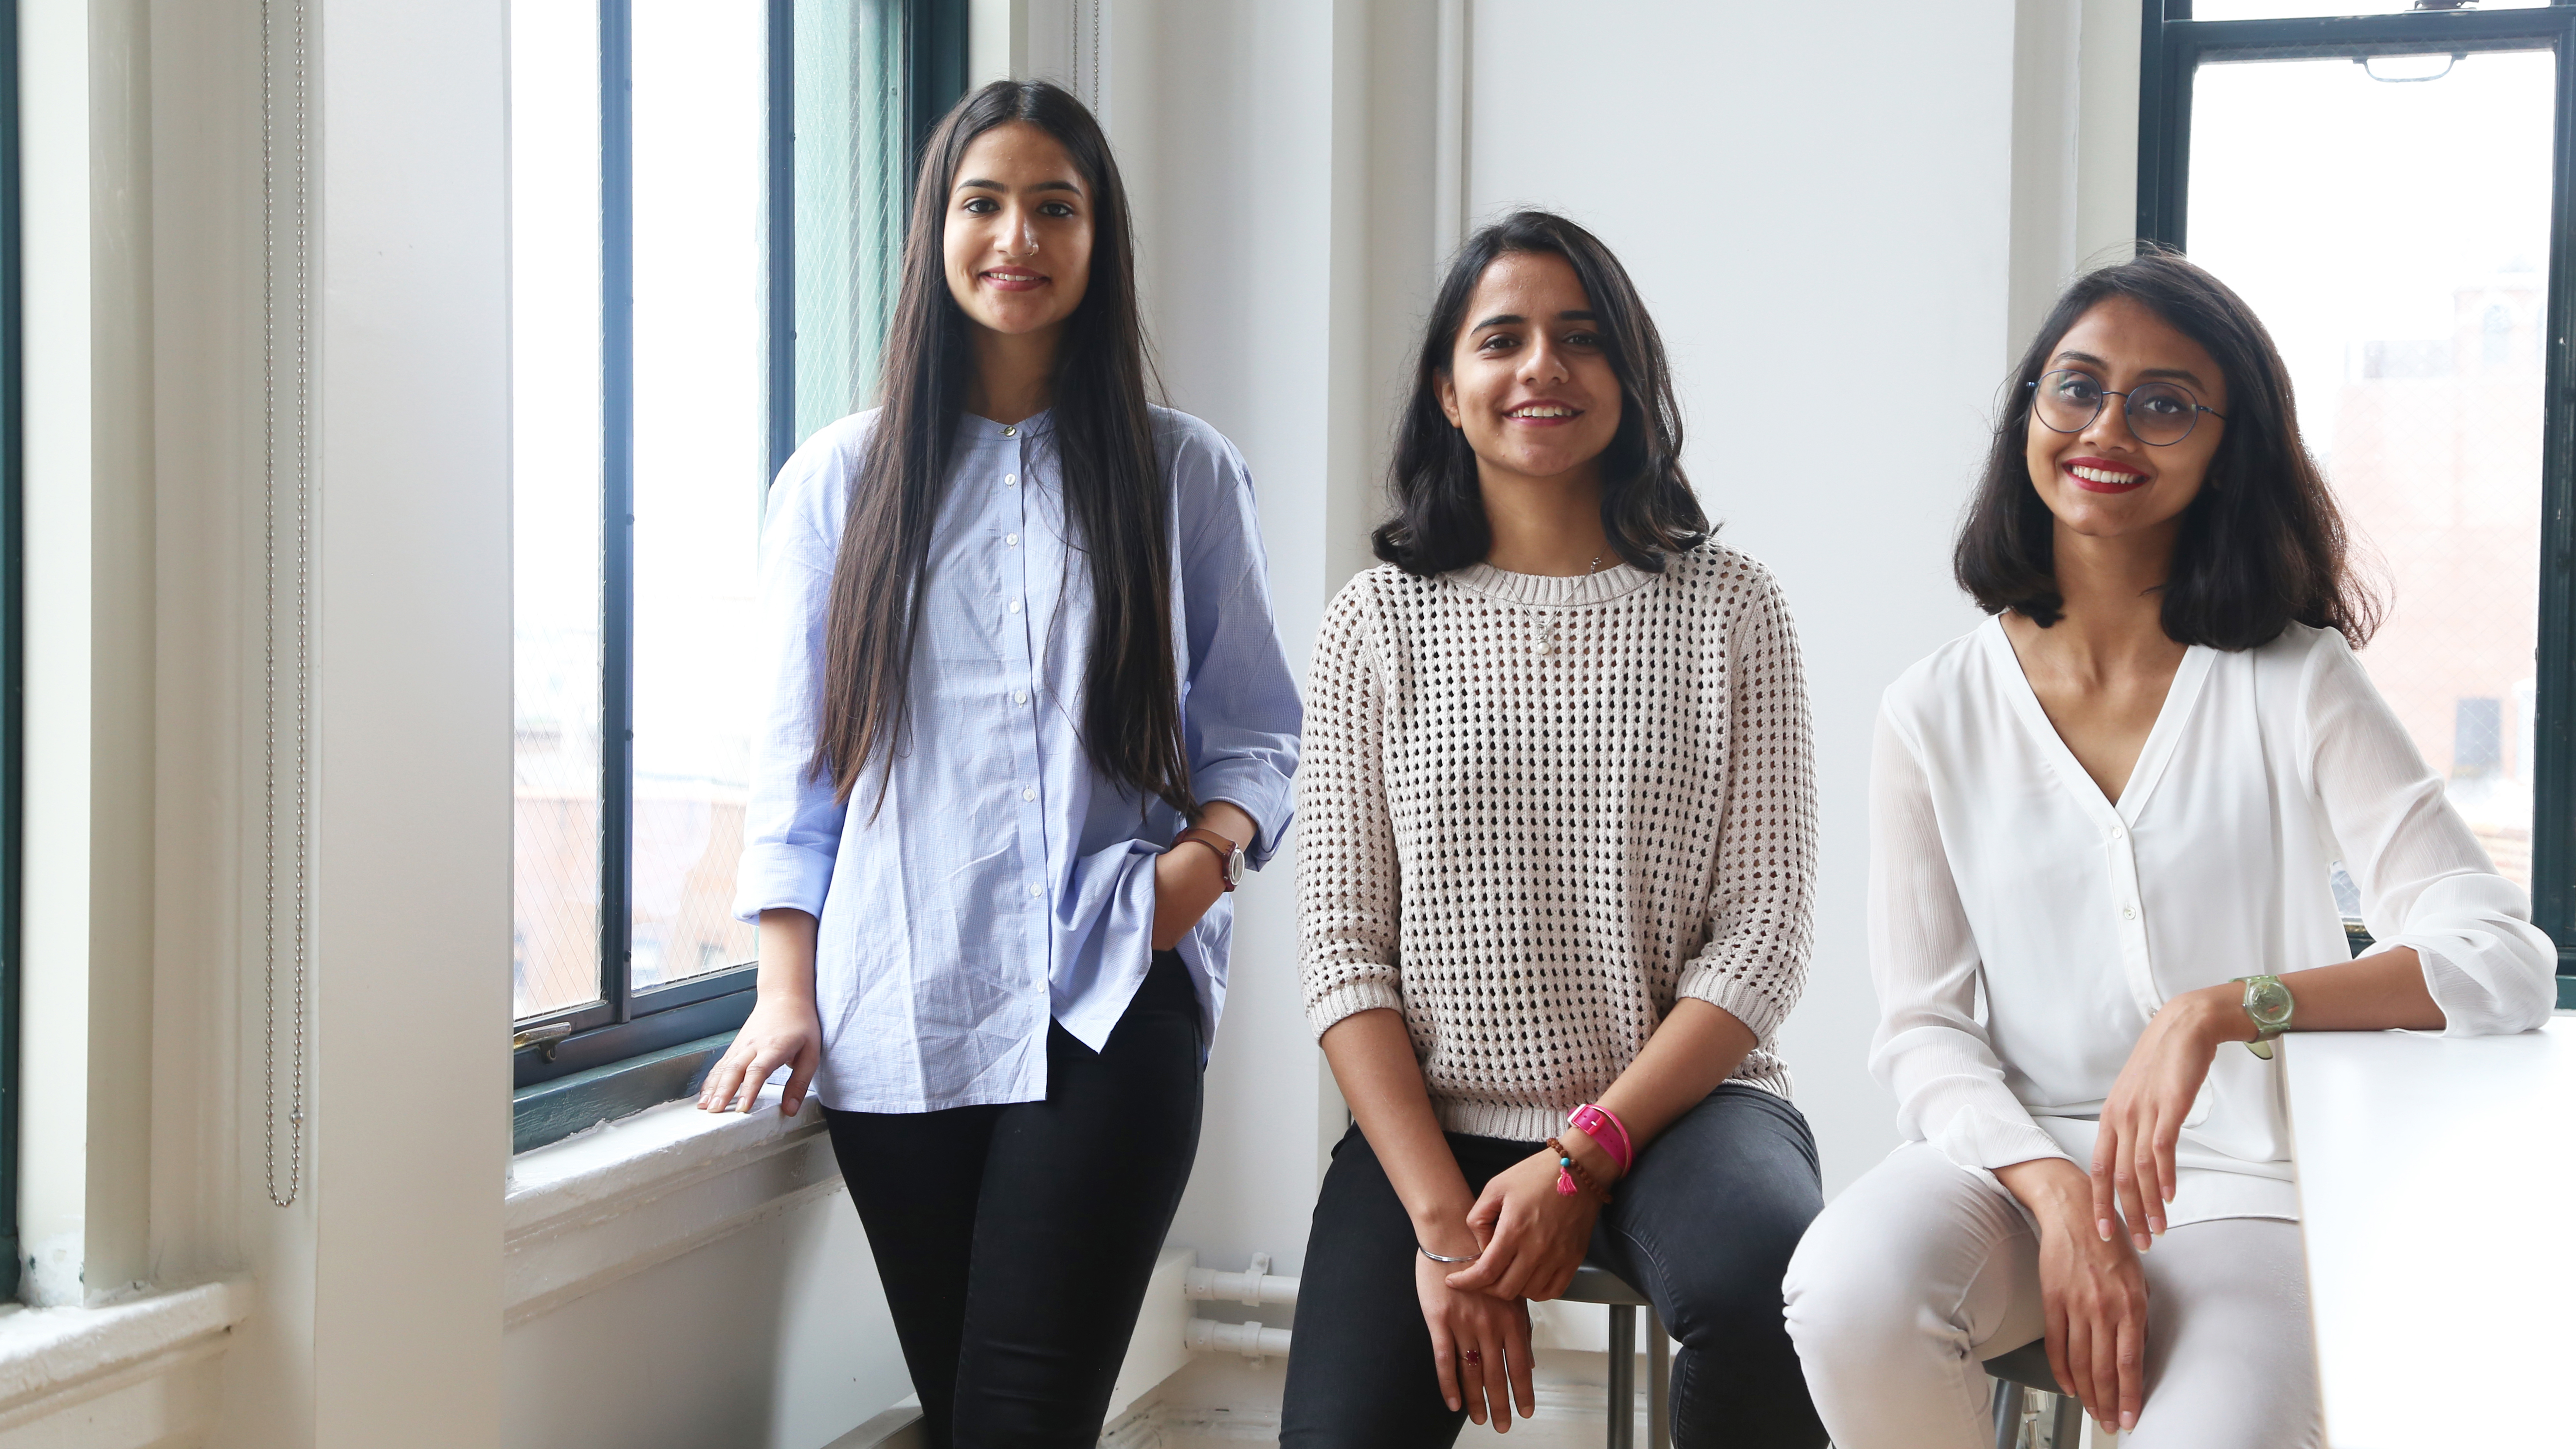 These Women Invented a Revolutionary Way to Save Kids' Lives. And It Only Costs $5